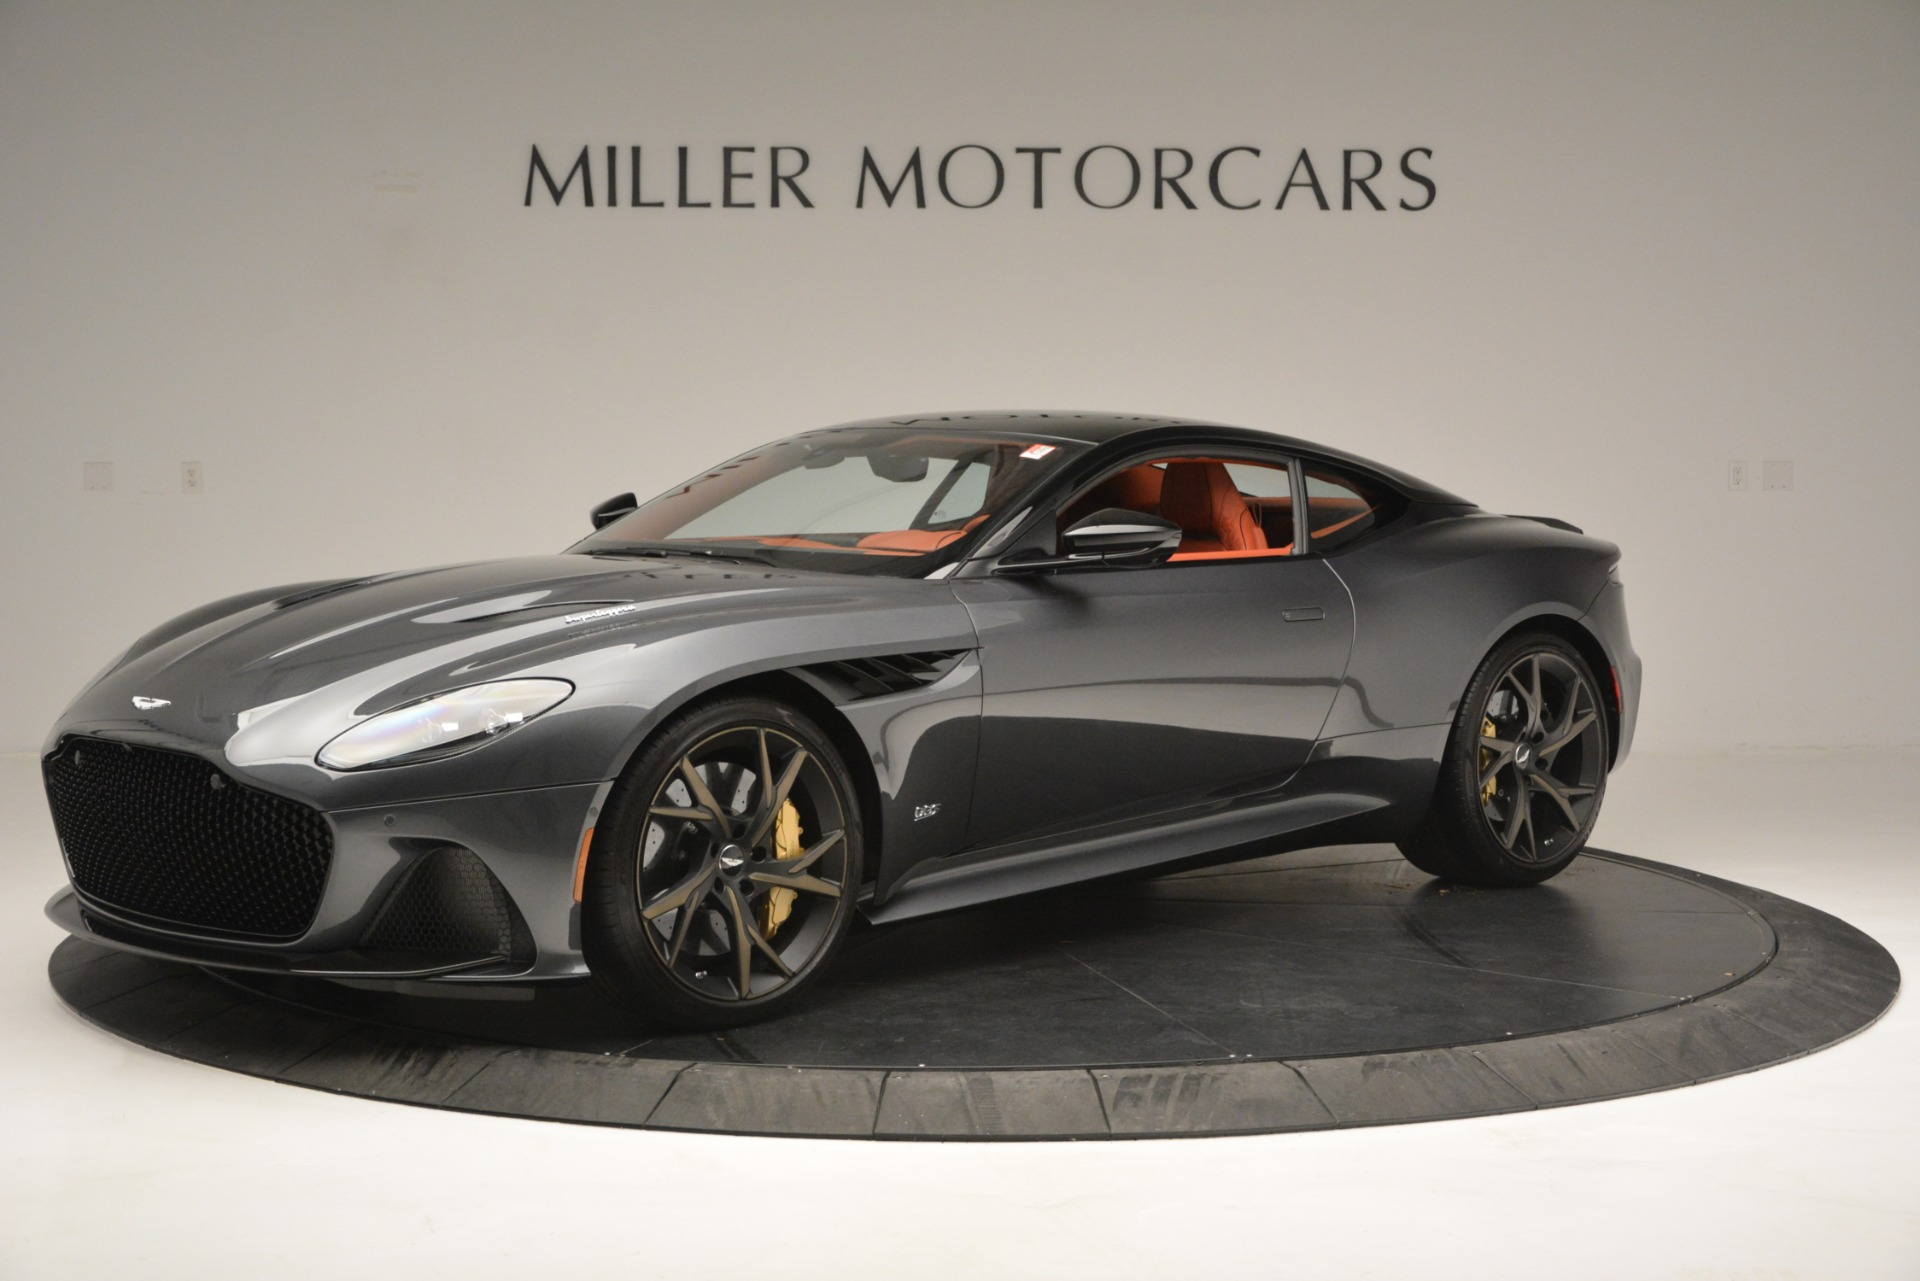 Used 2019 Aston Martin DBS Superleggera Coupe for sale $265,900 at Bentley Greenwich in Greenwich CT 06830 1